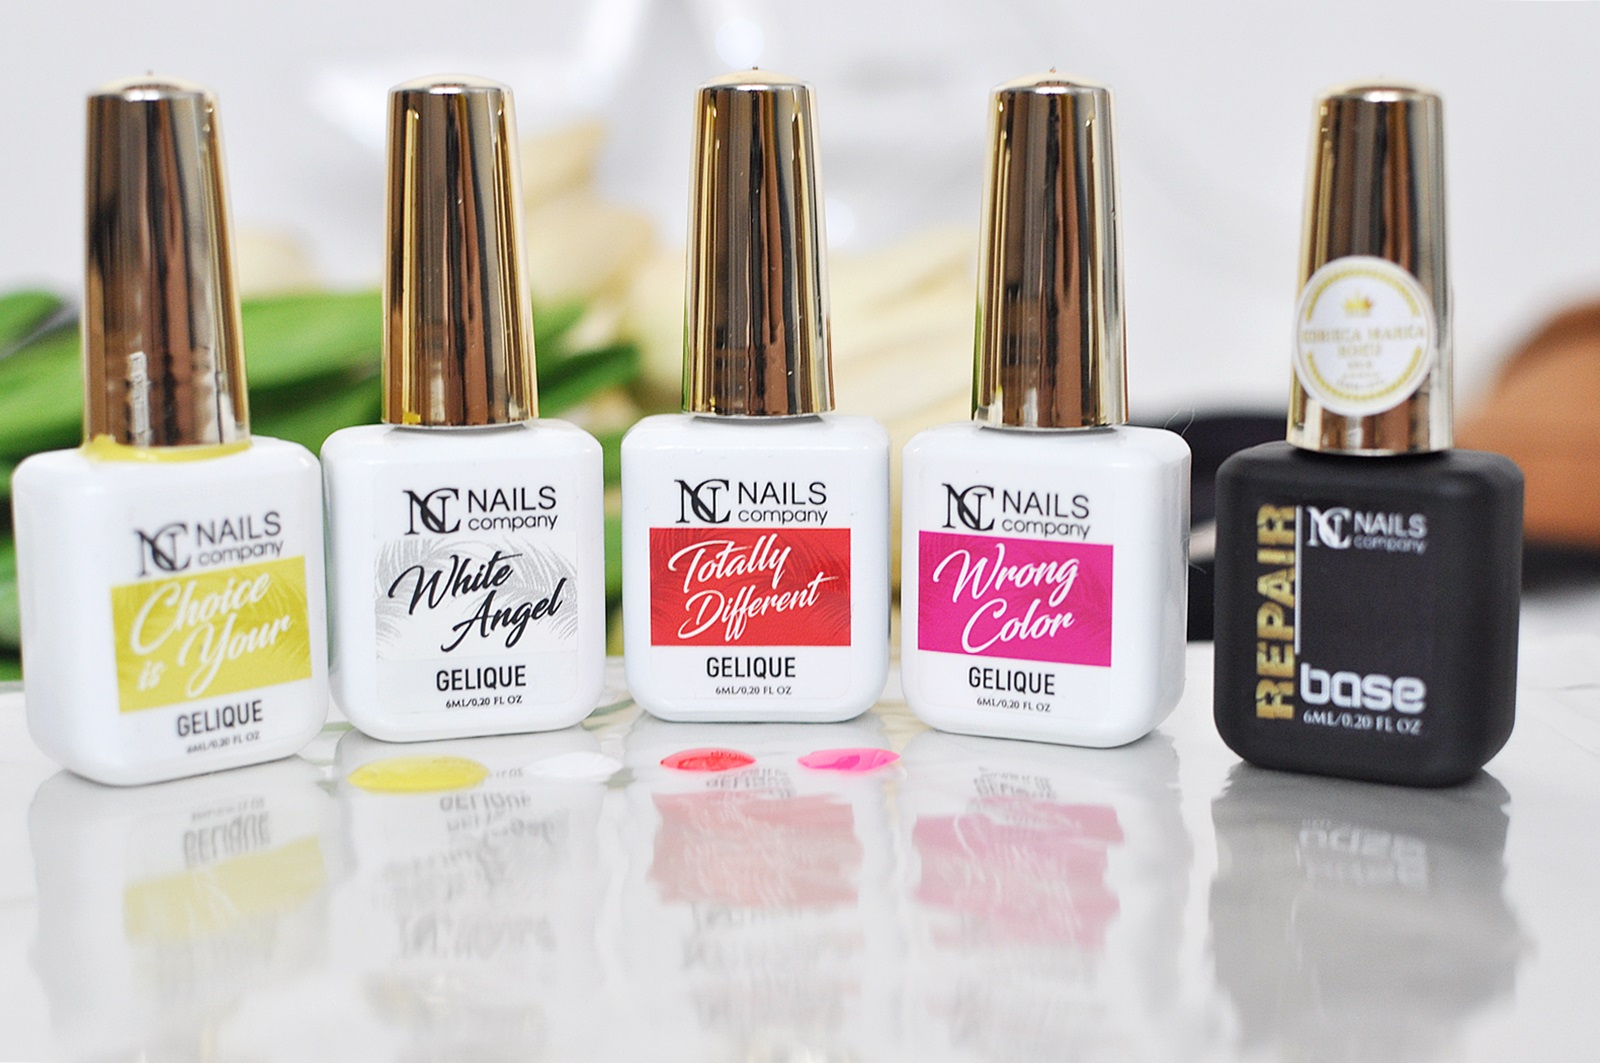 nails company lakiery totally different choice is yours, wrong color